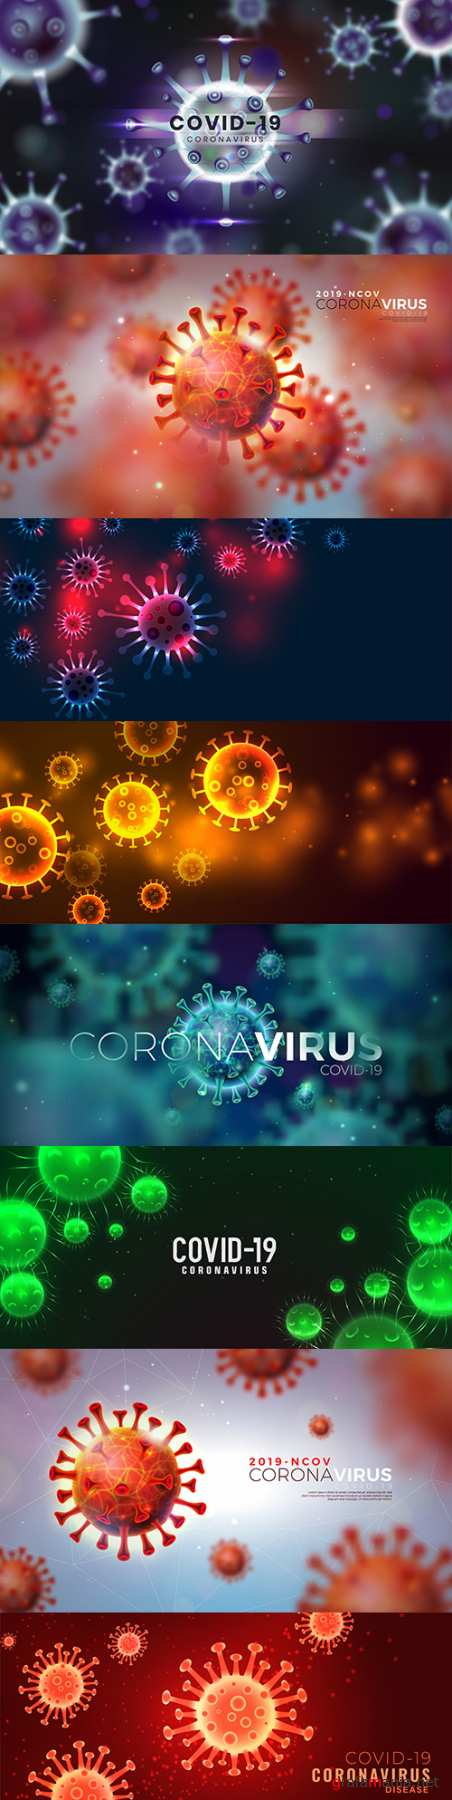 Covid-19 coronavirus flash design with virus cell background